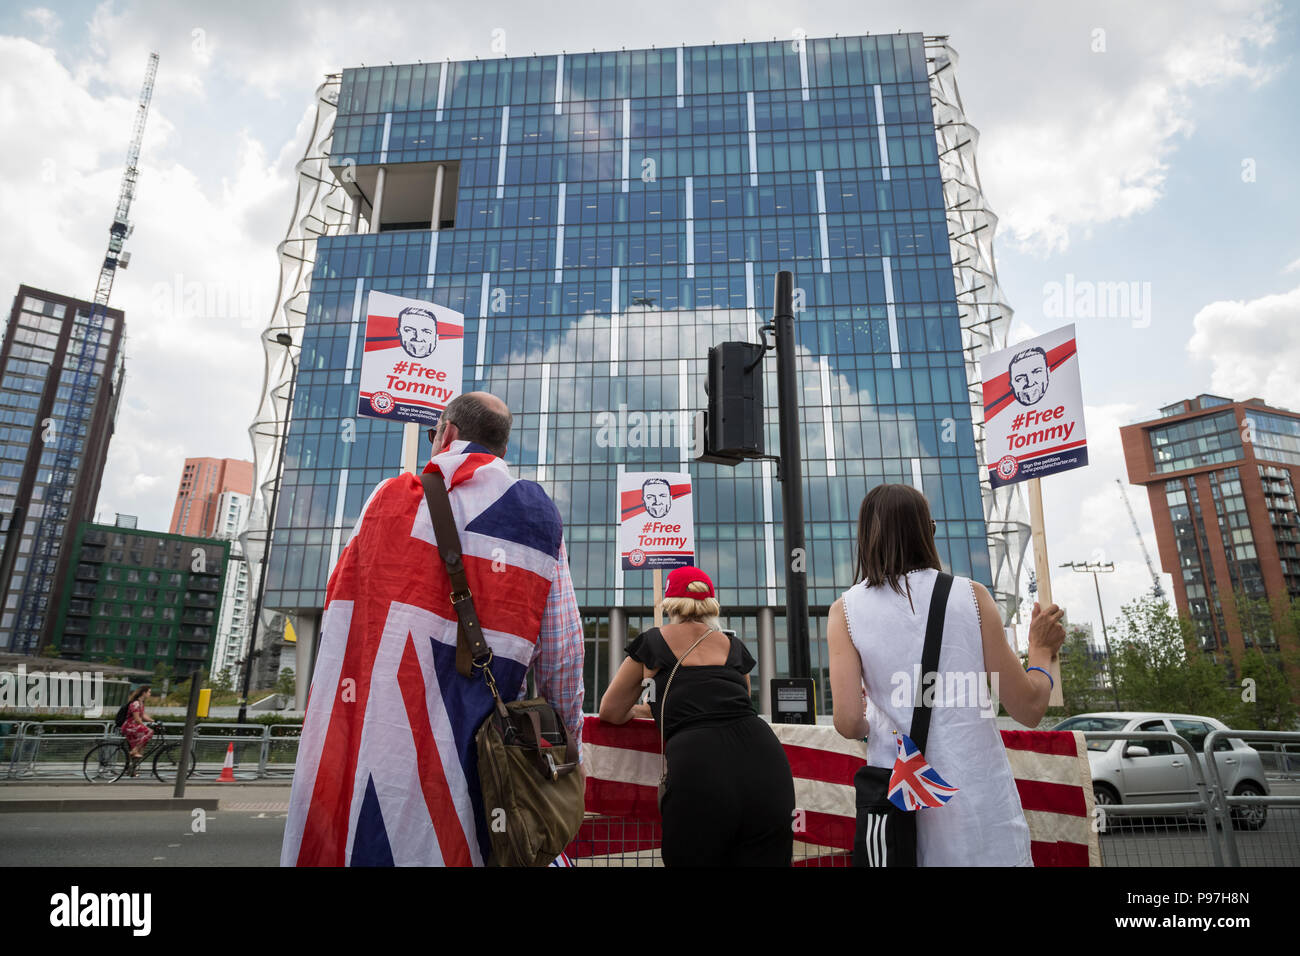 London, UK. 14th July 2018. Pro-Trump supporters gather near the US Embassy in London to celebrate the visit of the 45th President of the United States to UK. Credit: Guy Corbishley/Alamy Live News Stock Photo